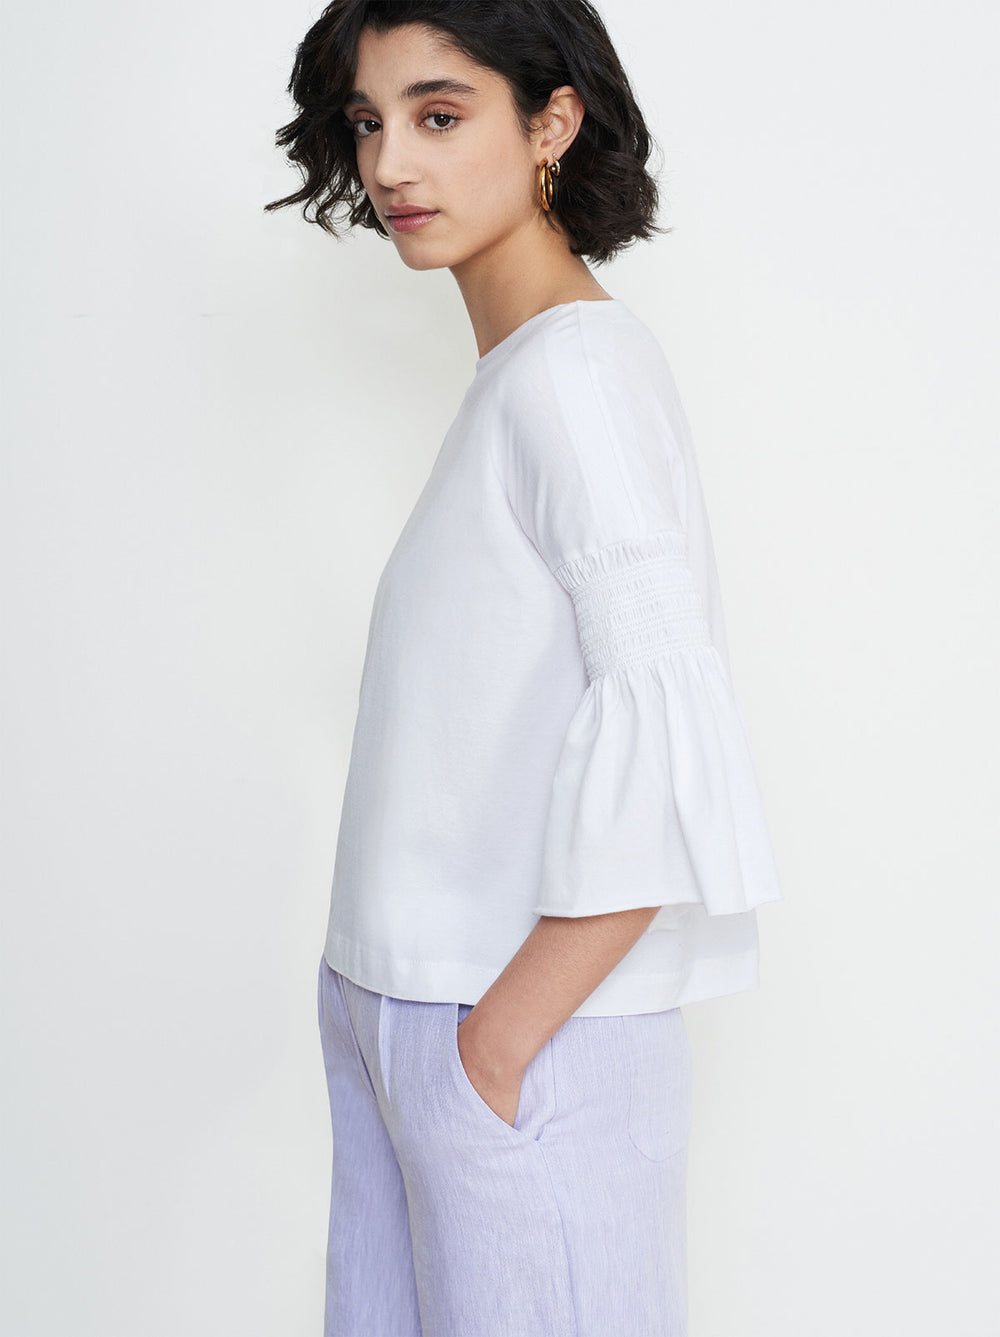 Esme White Smocked Sleeve T-shirt